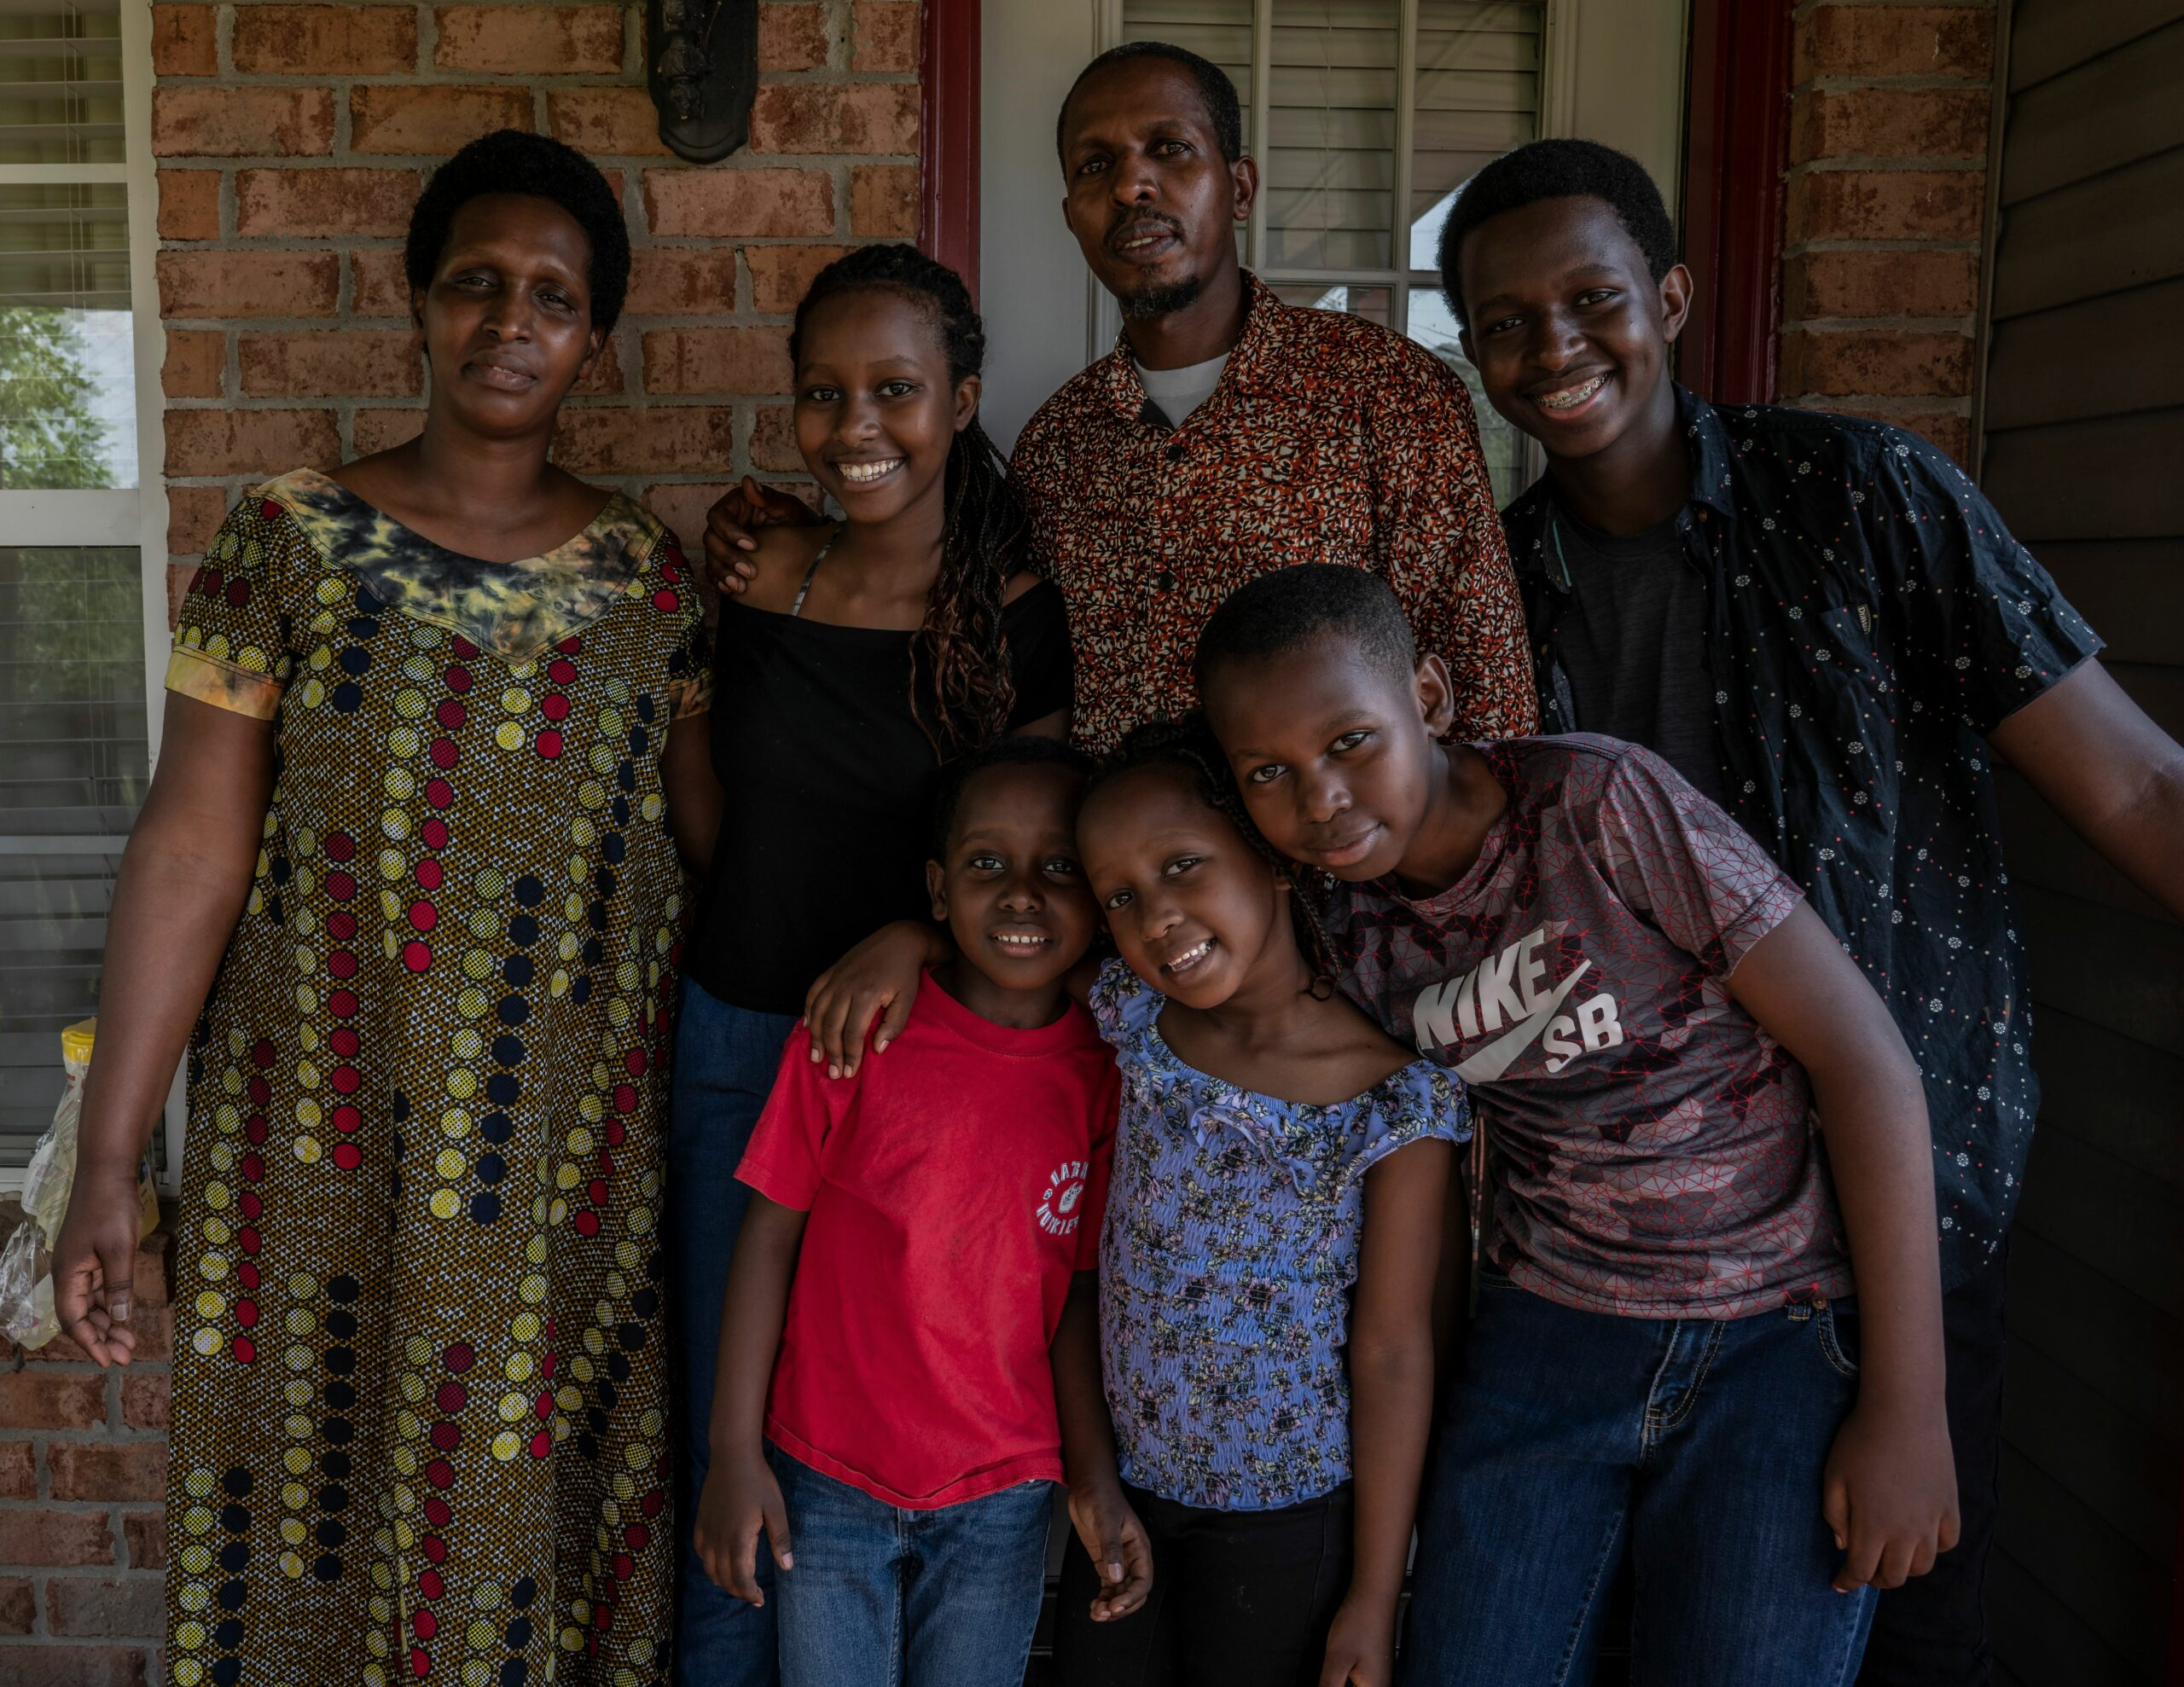 Settled into new homes, refugees in US say they are working for a better life for all